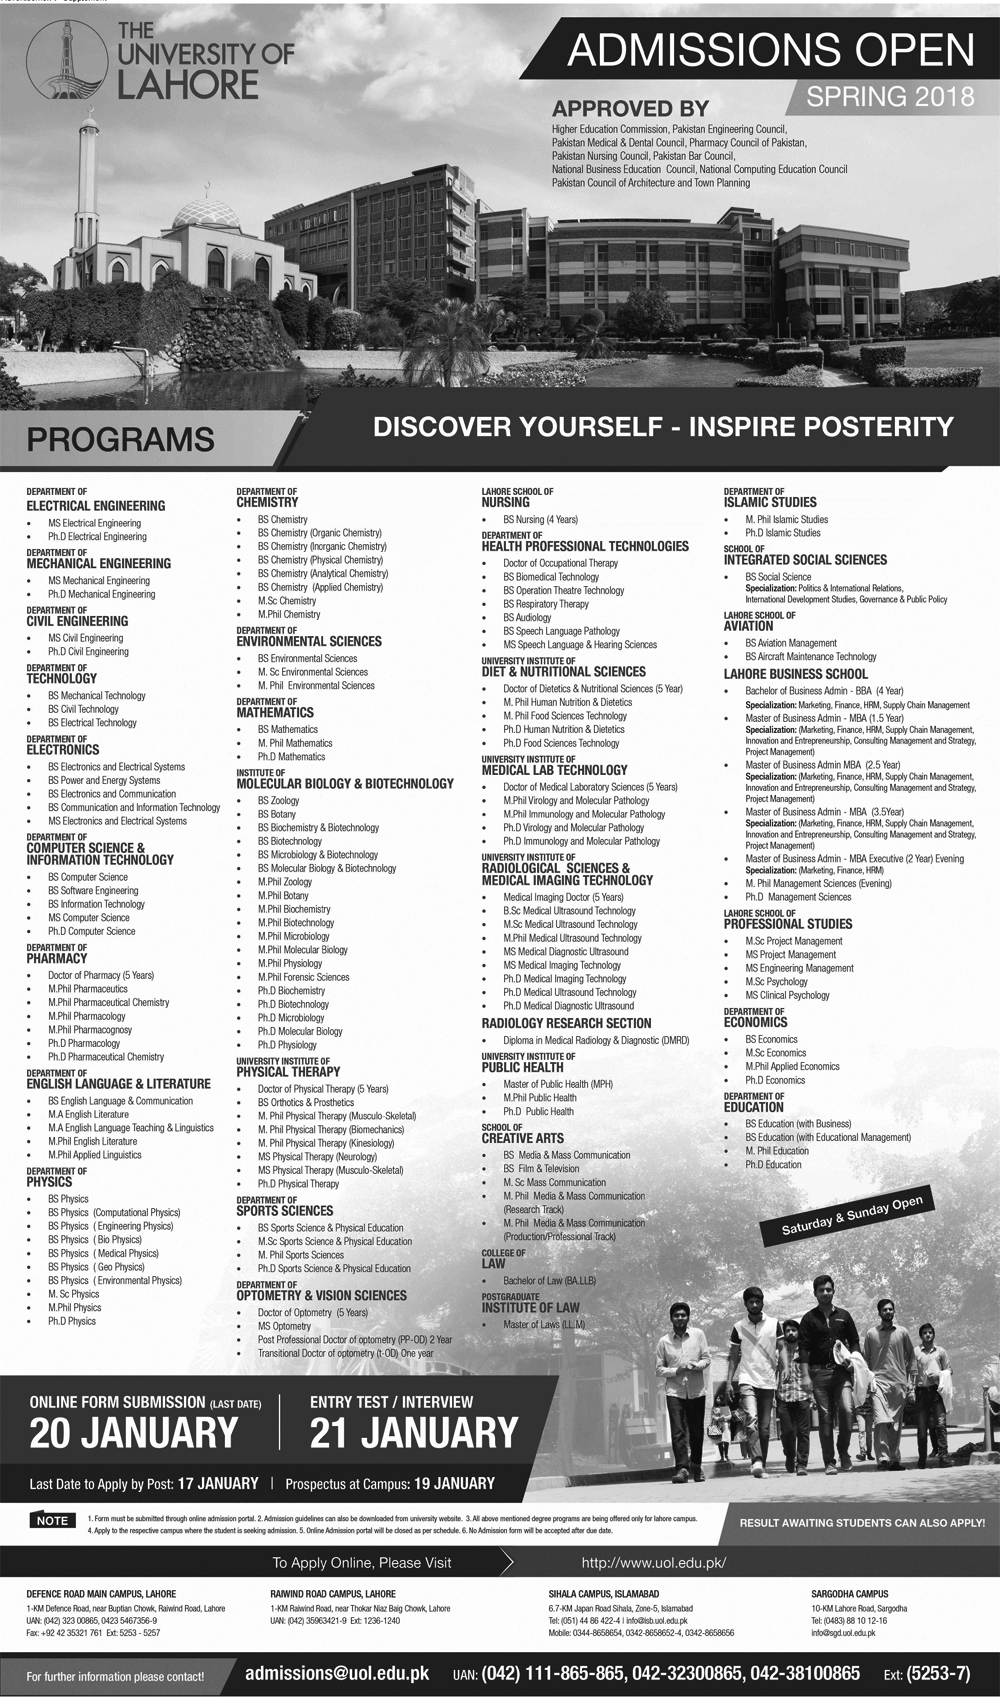 The university of lahore uol admissions 2018 yelopaper Choice Image